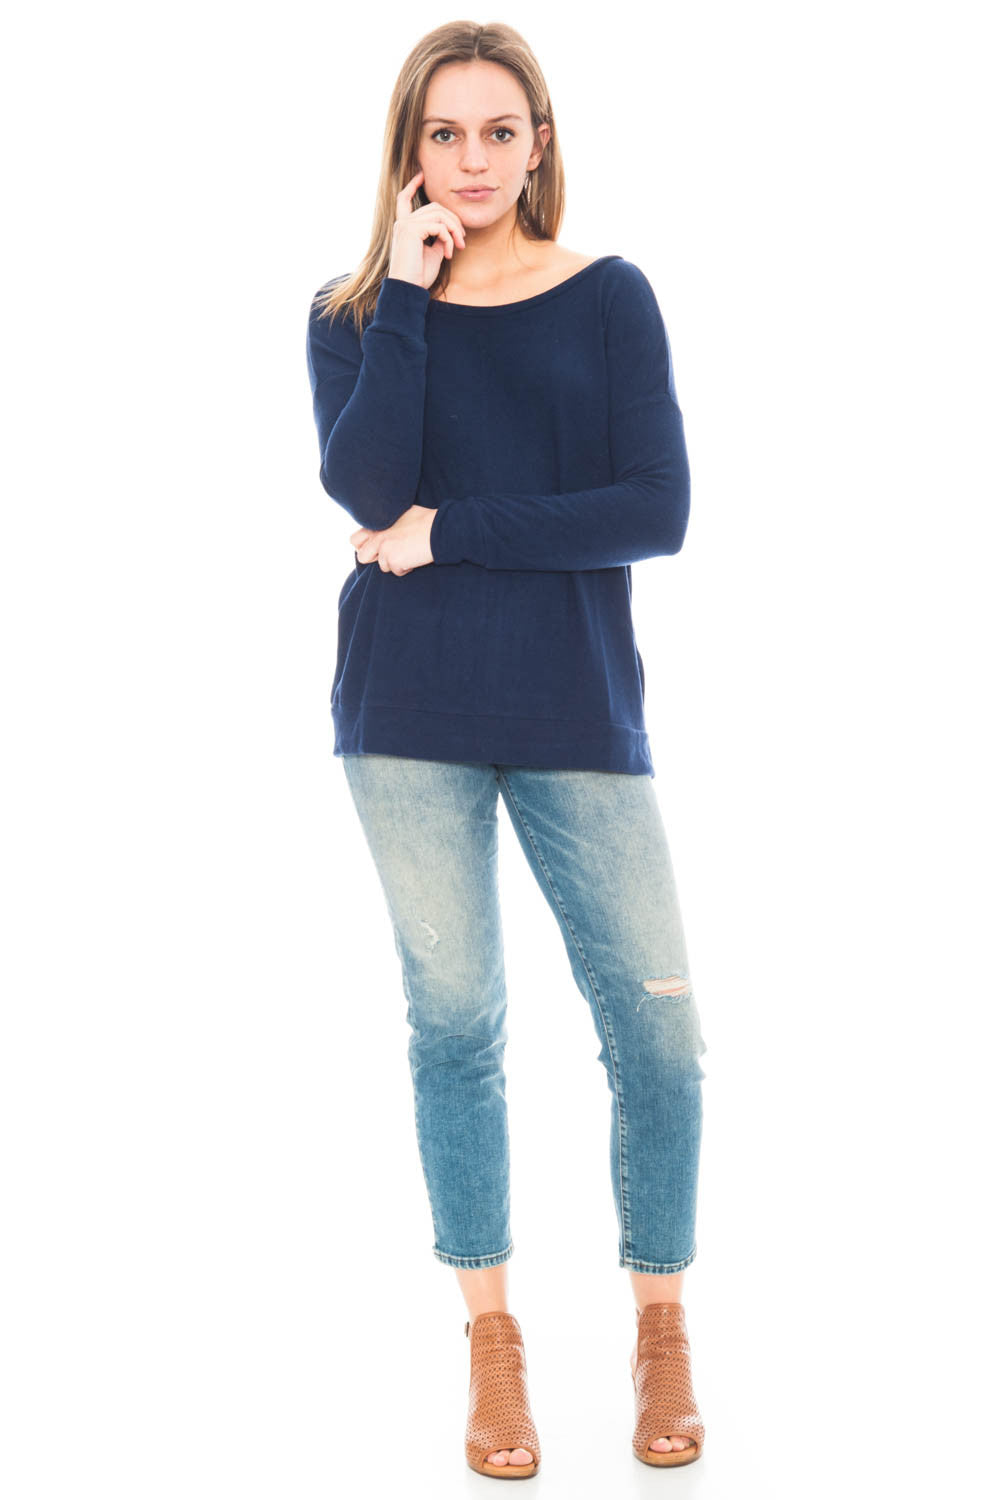 Sweater - Hartman by BB Dakota Top with Back Zipper